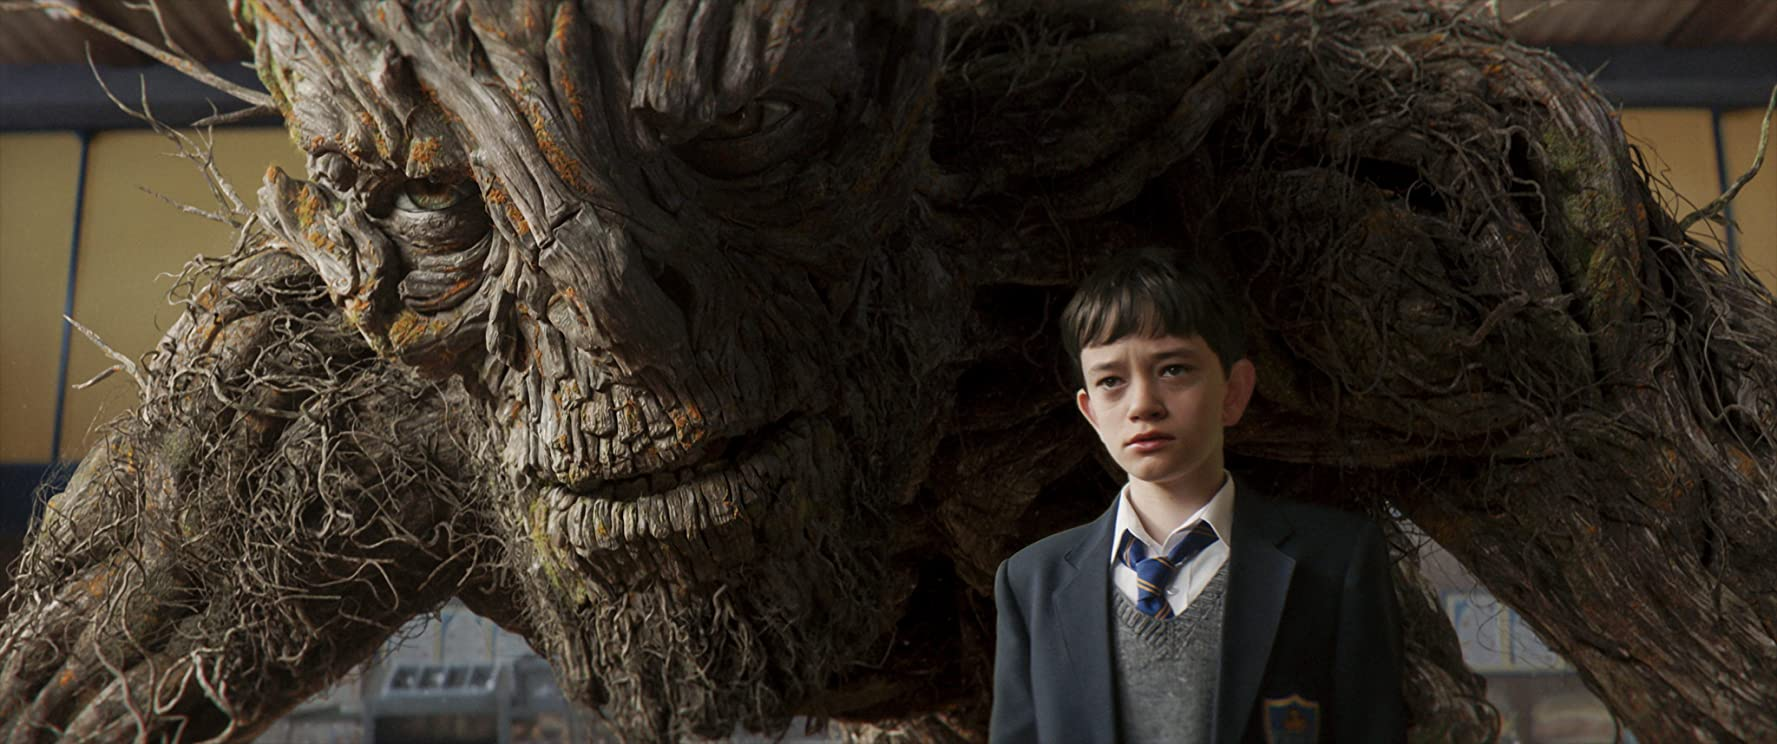 Liam Neeson and Lewis MacDougall in A Monster Calls (2016)